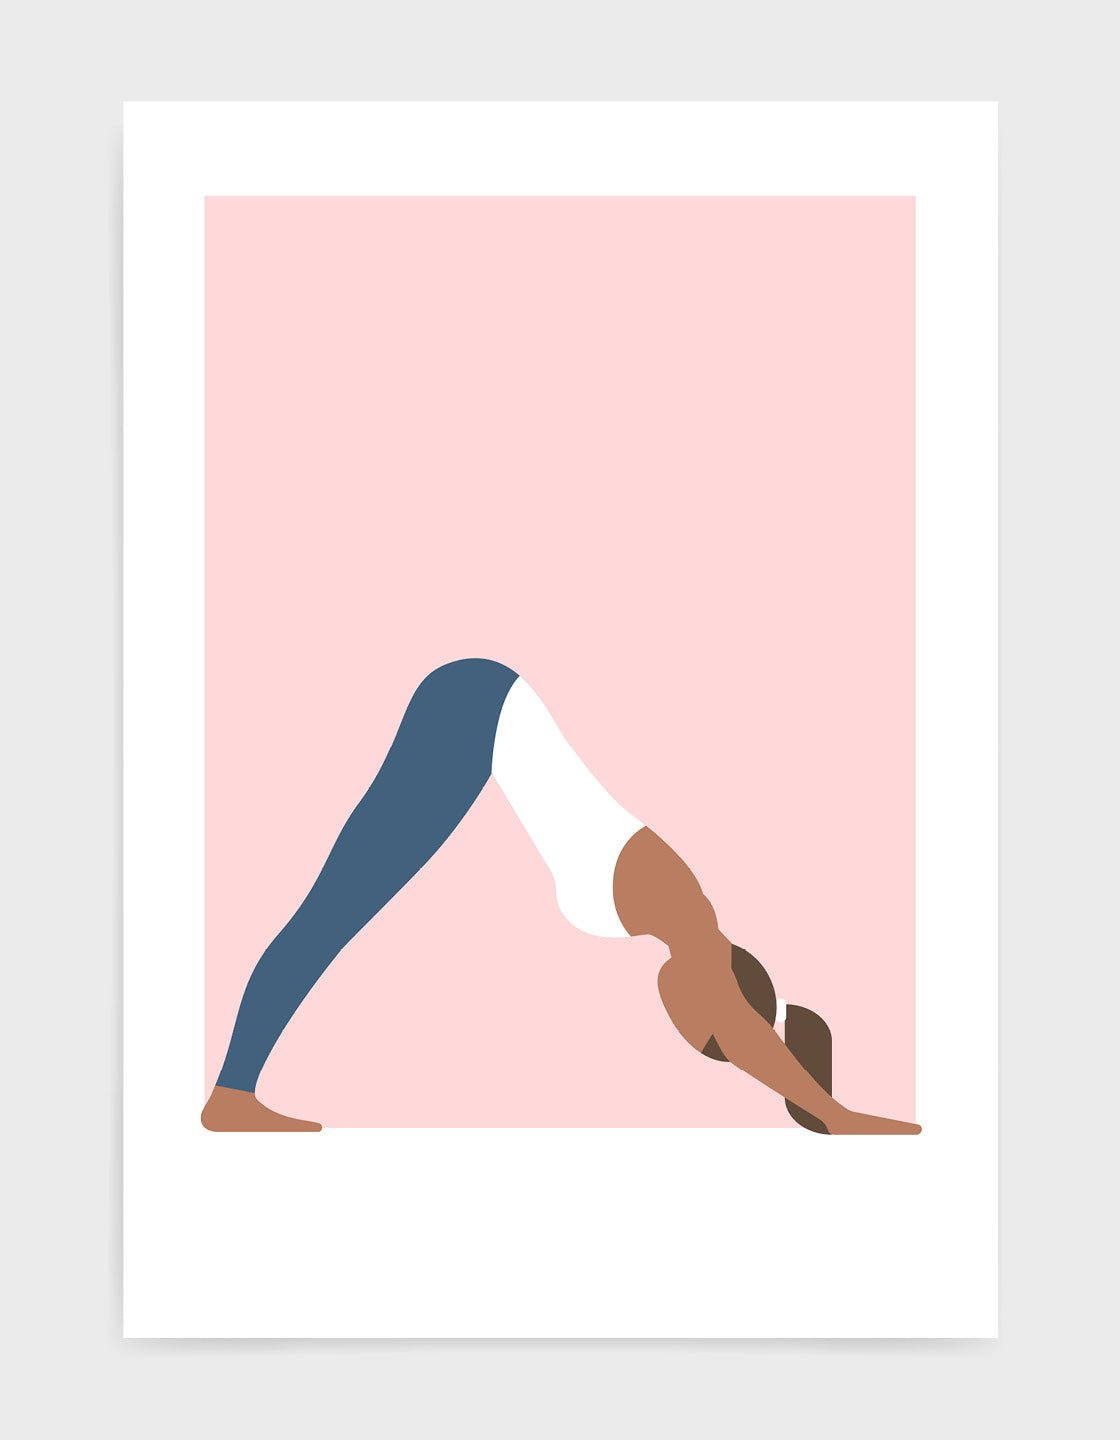 Illustration of a woman in downward dog yoga pose against a pink background